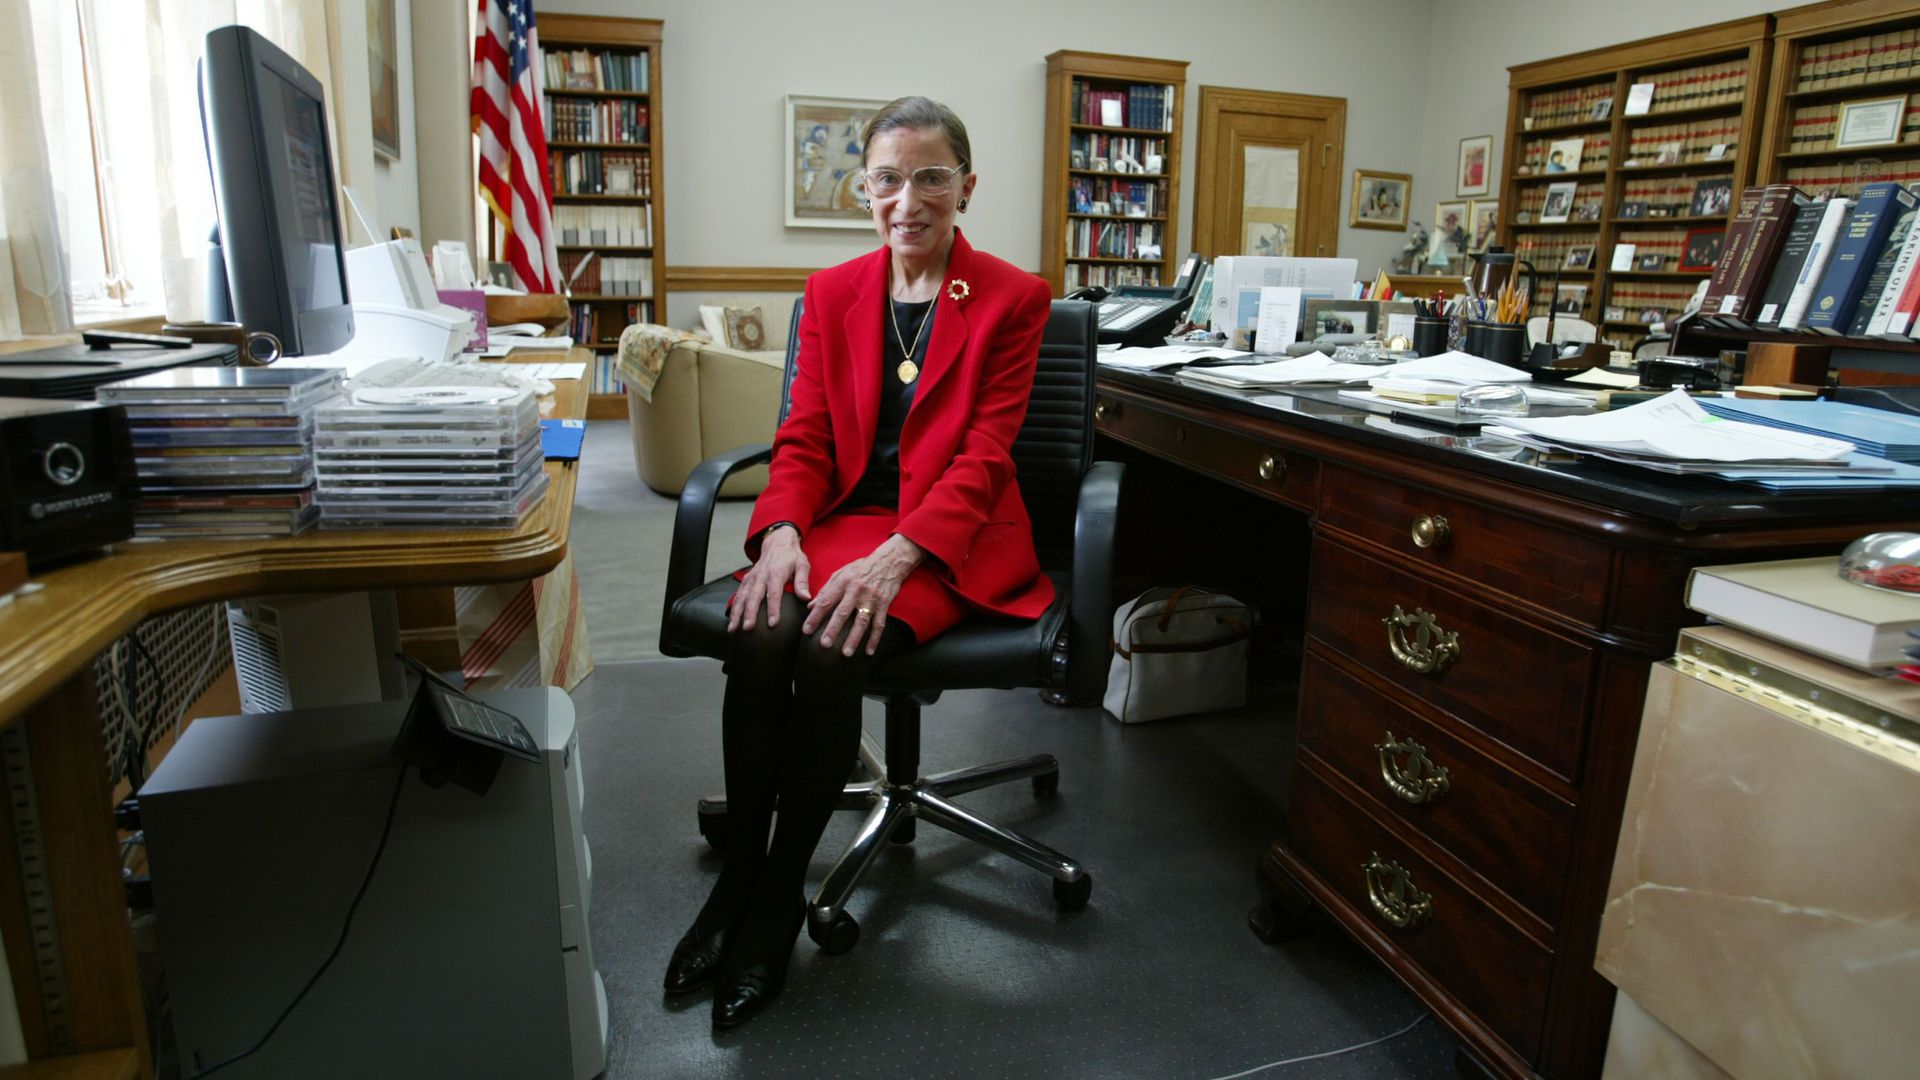 Justice Ginsburg sits in her chambers in 2002.